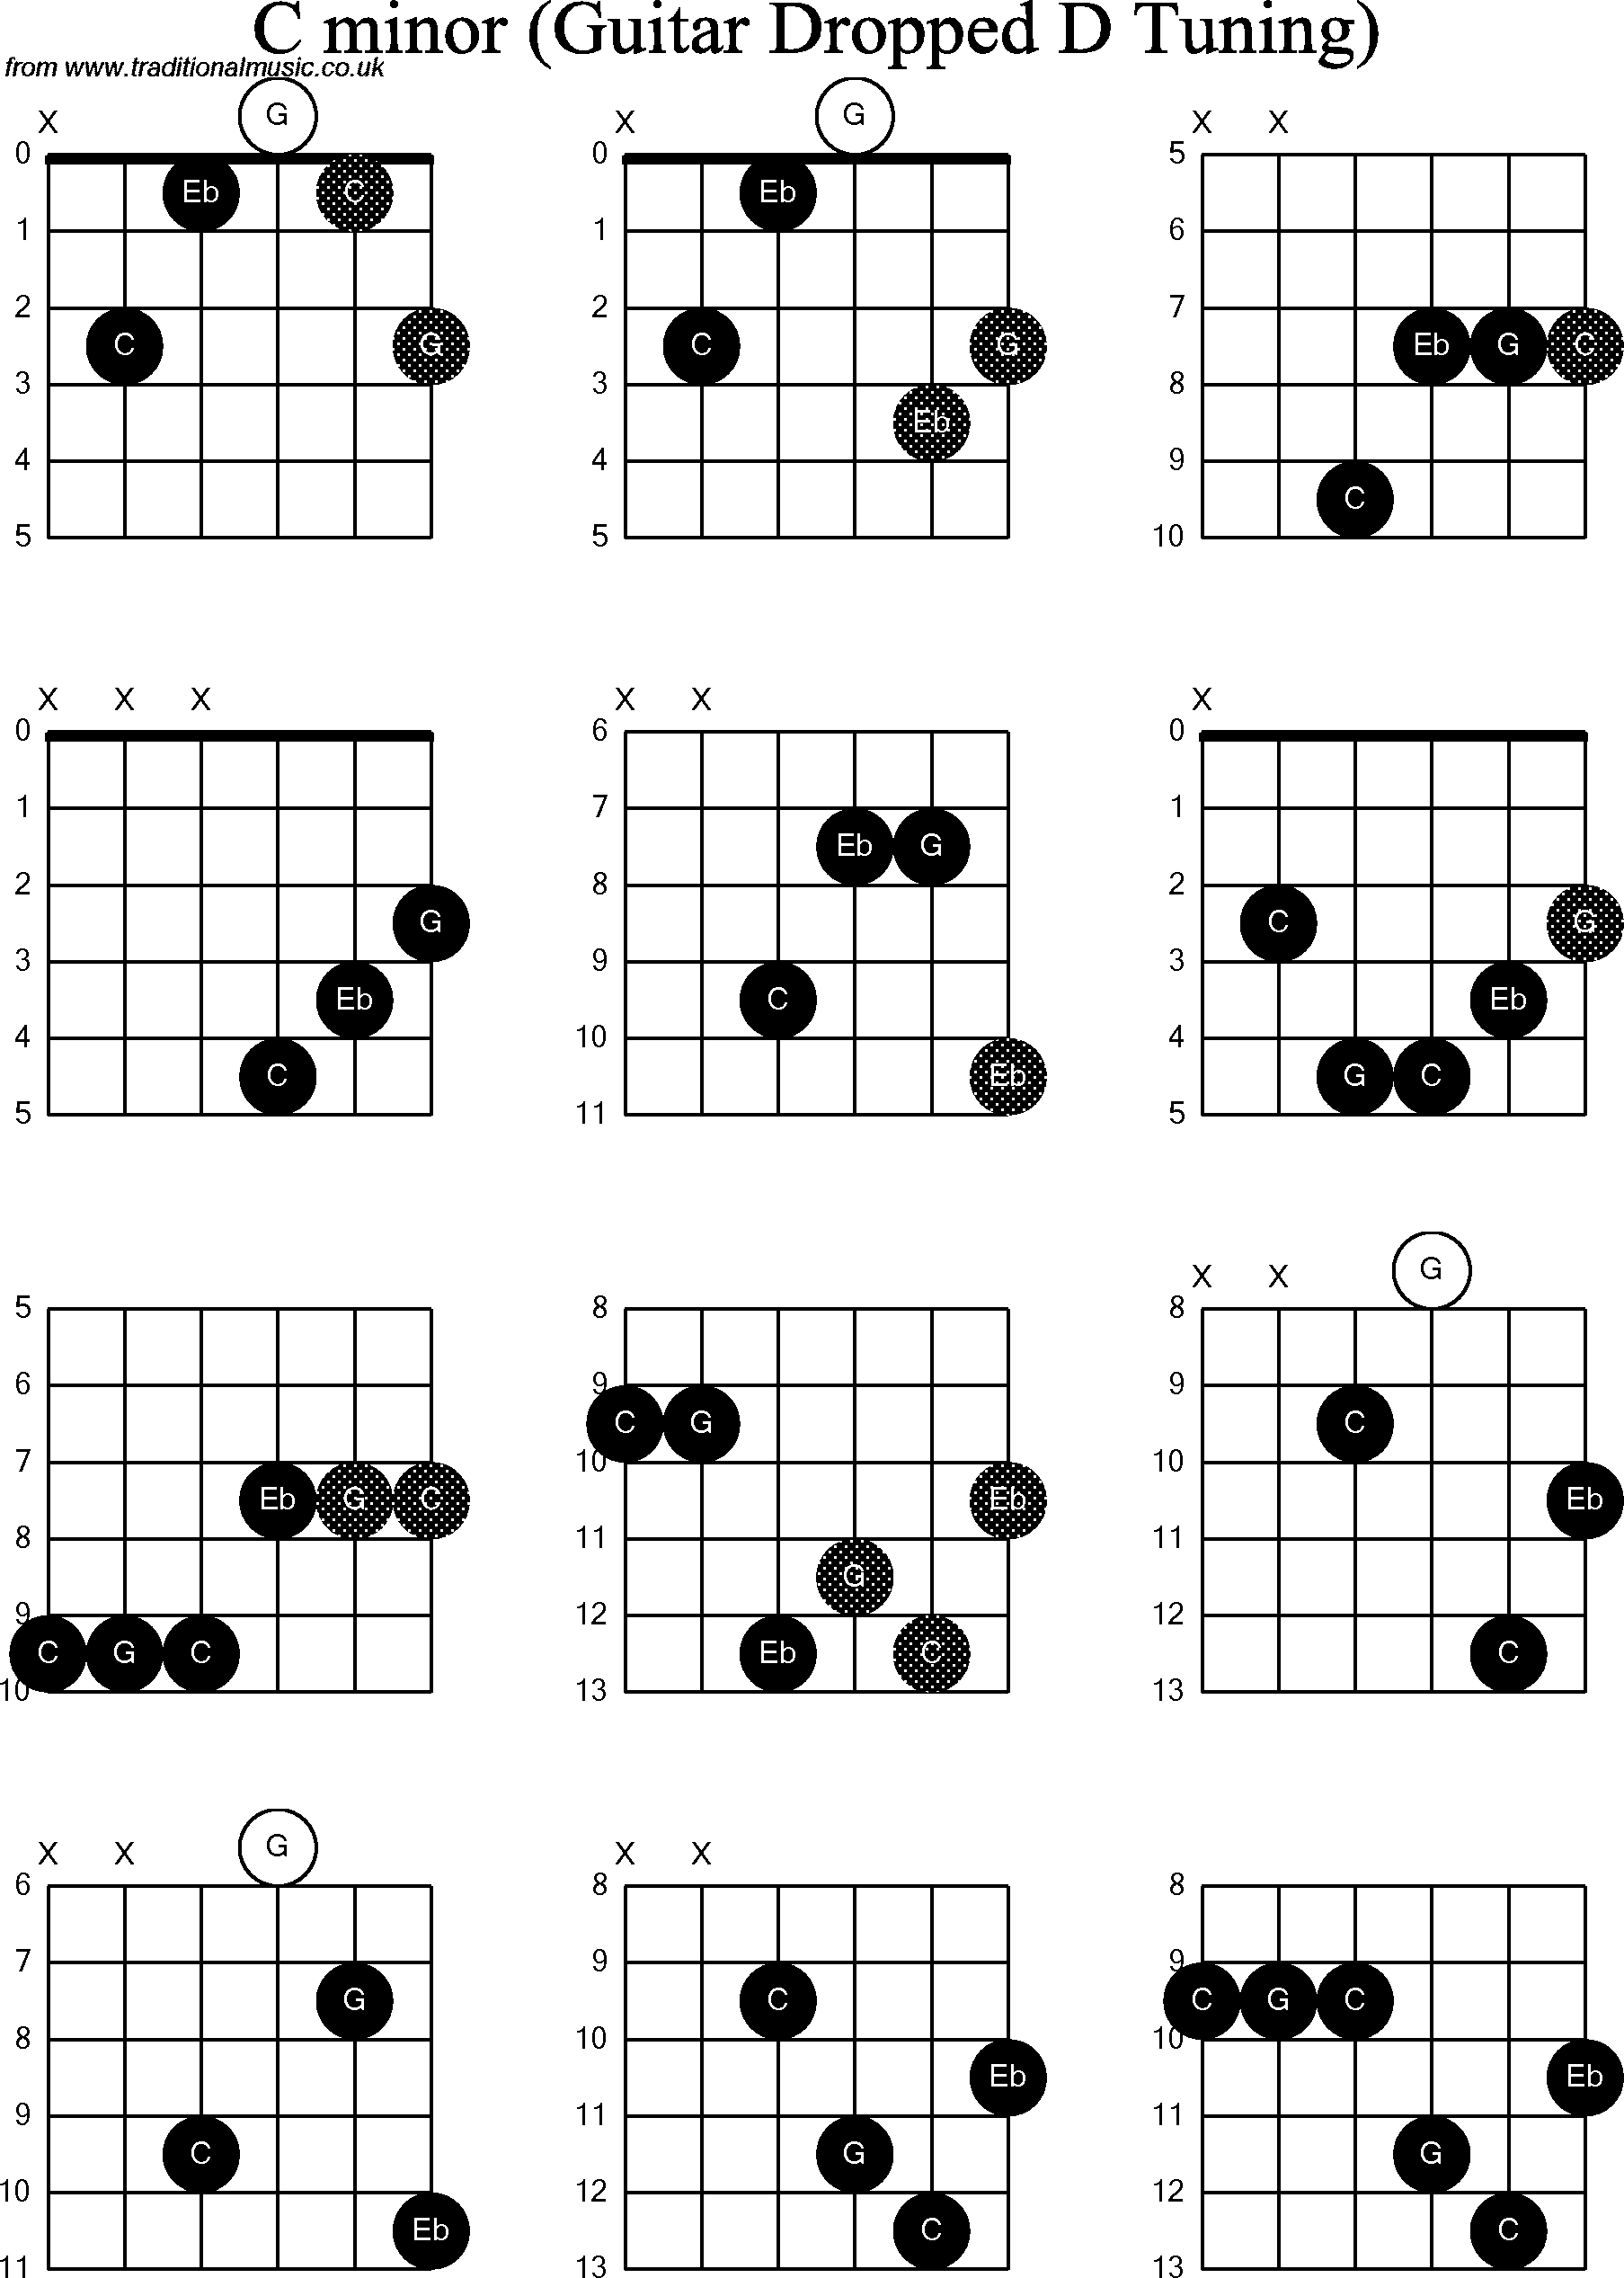 C Minor Chord Chord Diagrams For Dropped D Guitardadgbe C Minor